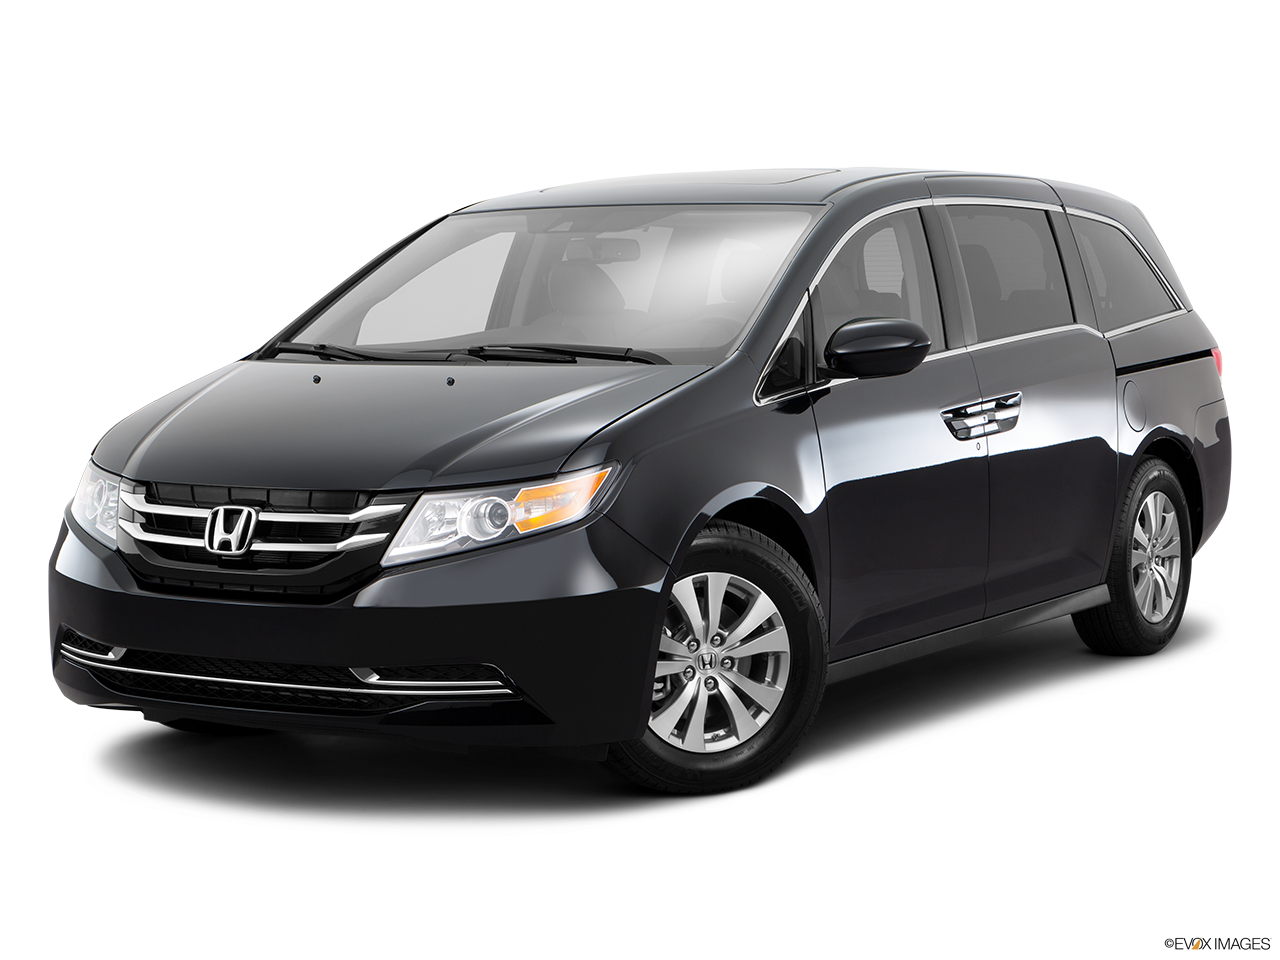 2016 honda odyssey hampton roads casey honda casey honda. Black Bedroom Furniture Sets. Home Design Ideas